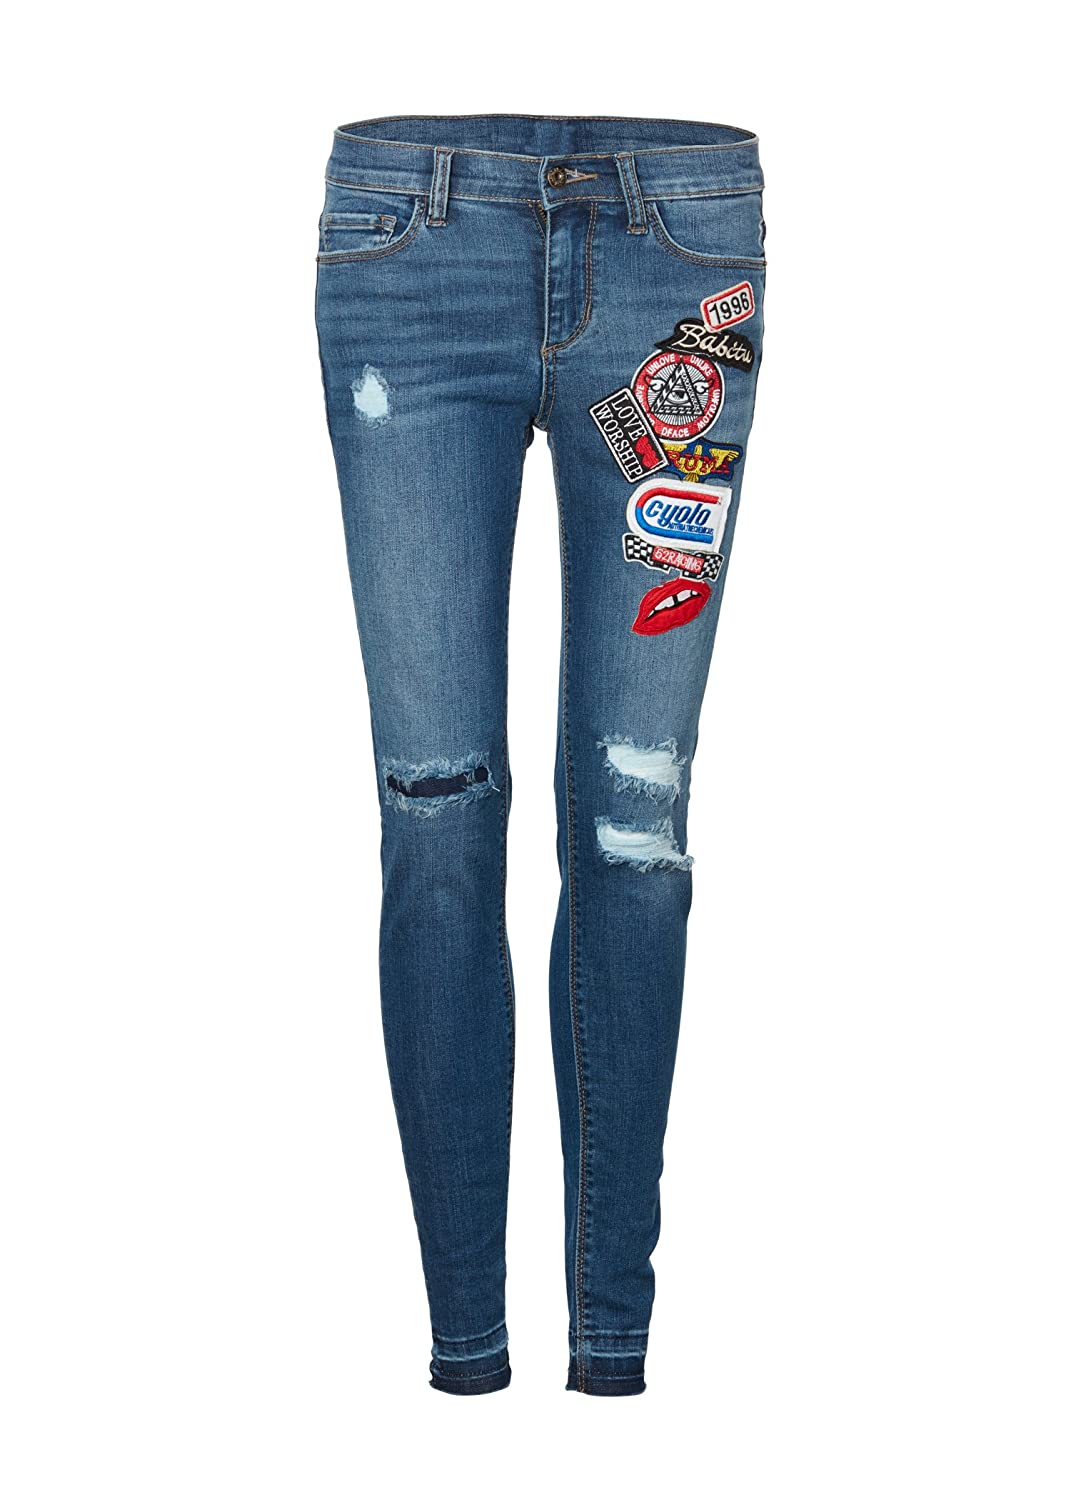 Womens Skinny Fit Denim Jeans with Patches